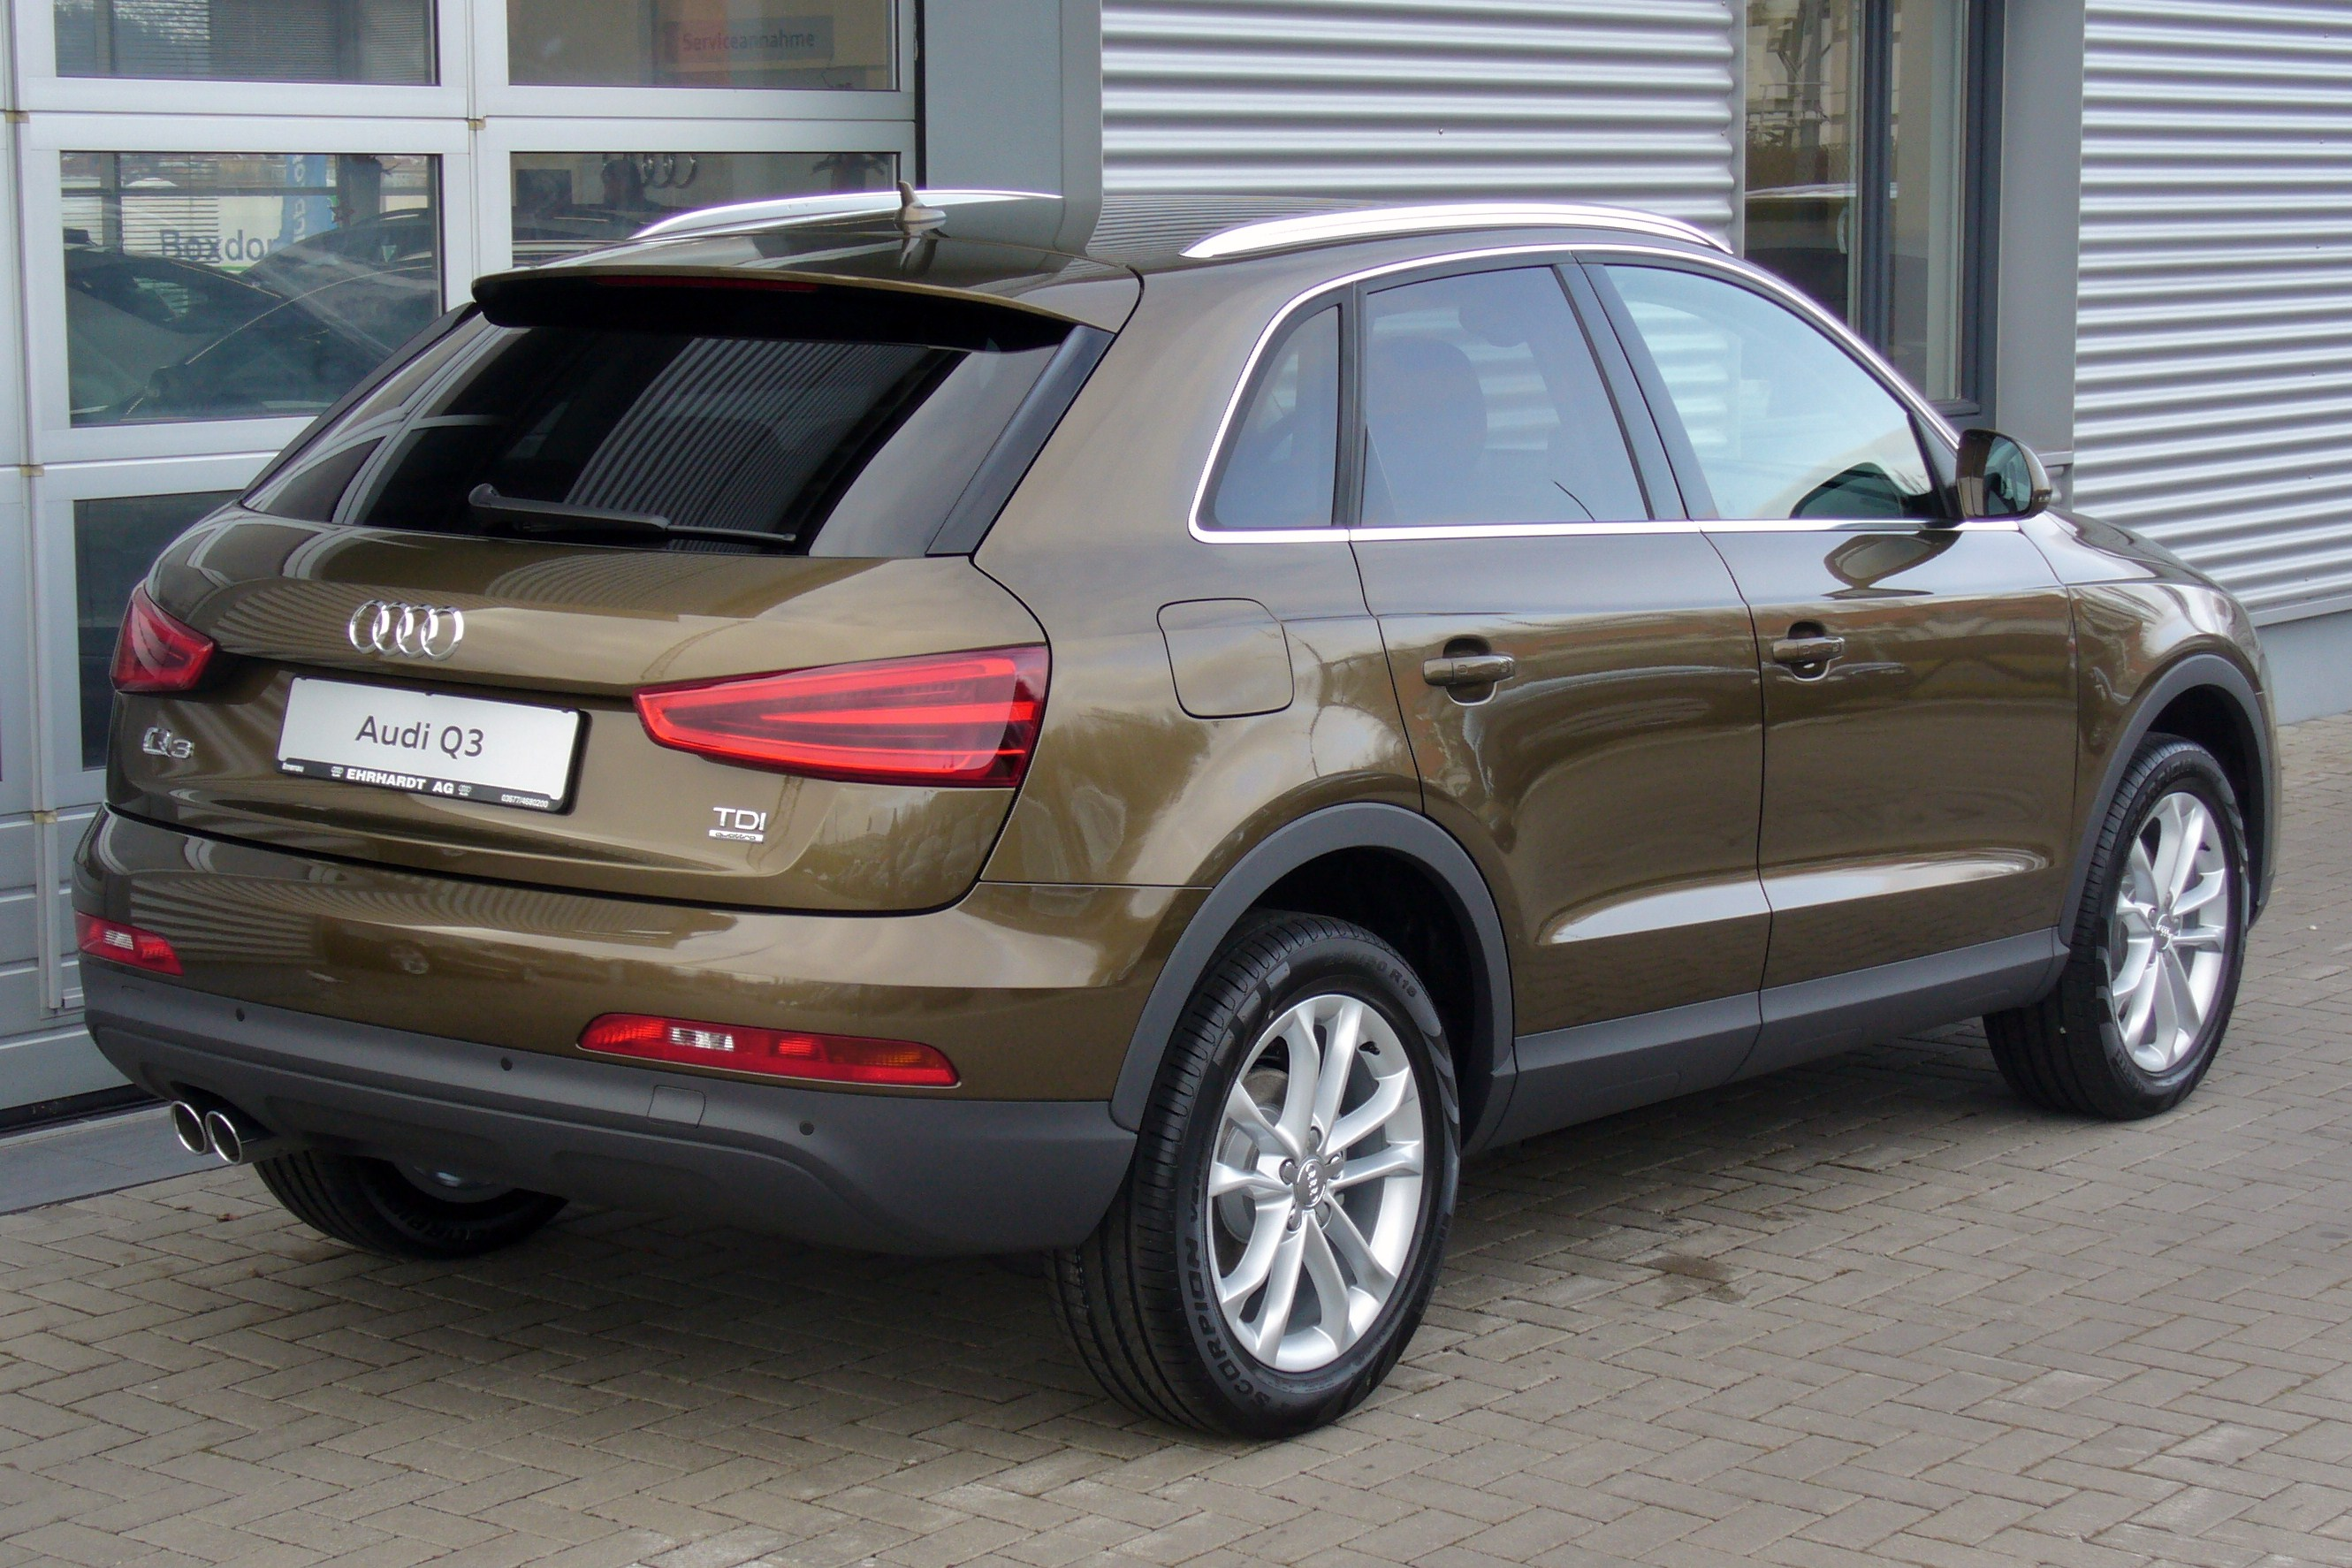 2011 Audi Q3 - pictures, information and specs - Auto ...